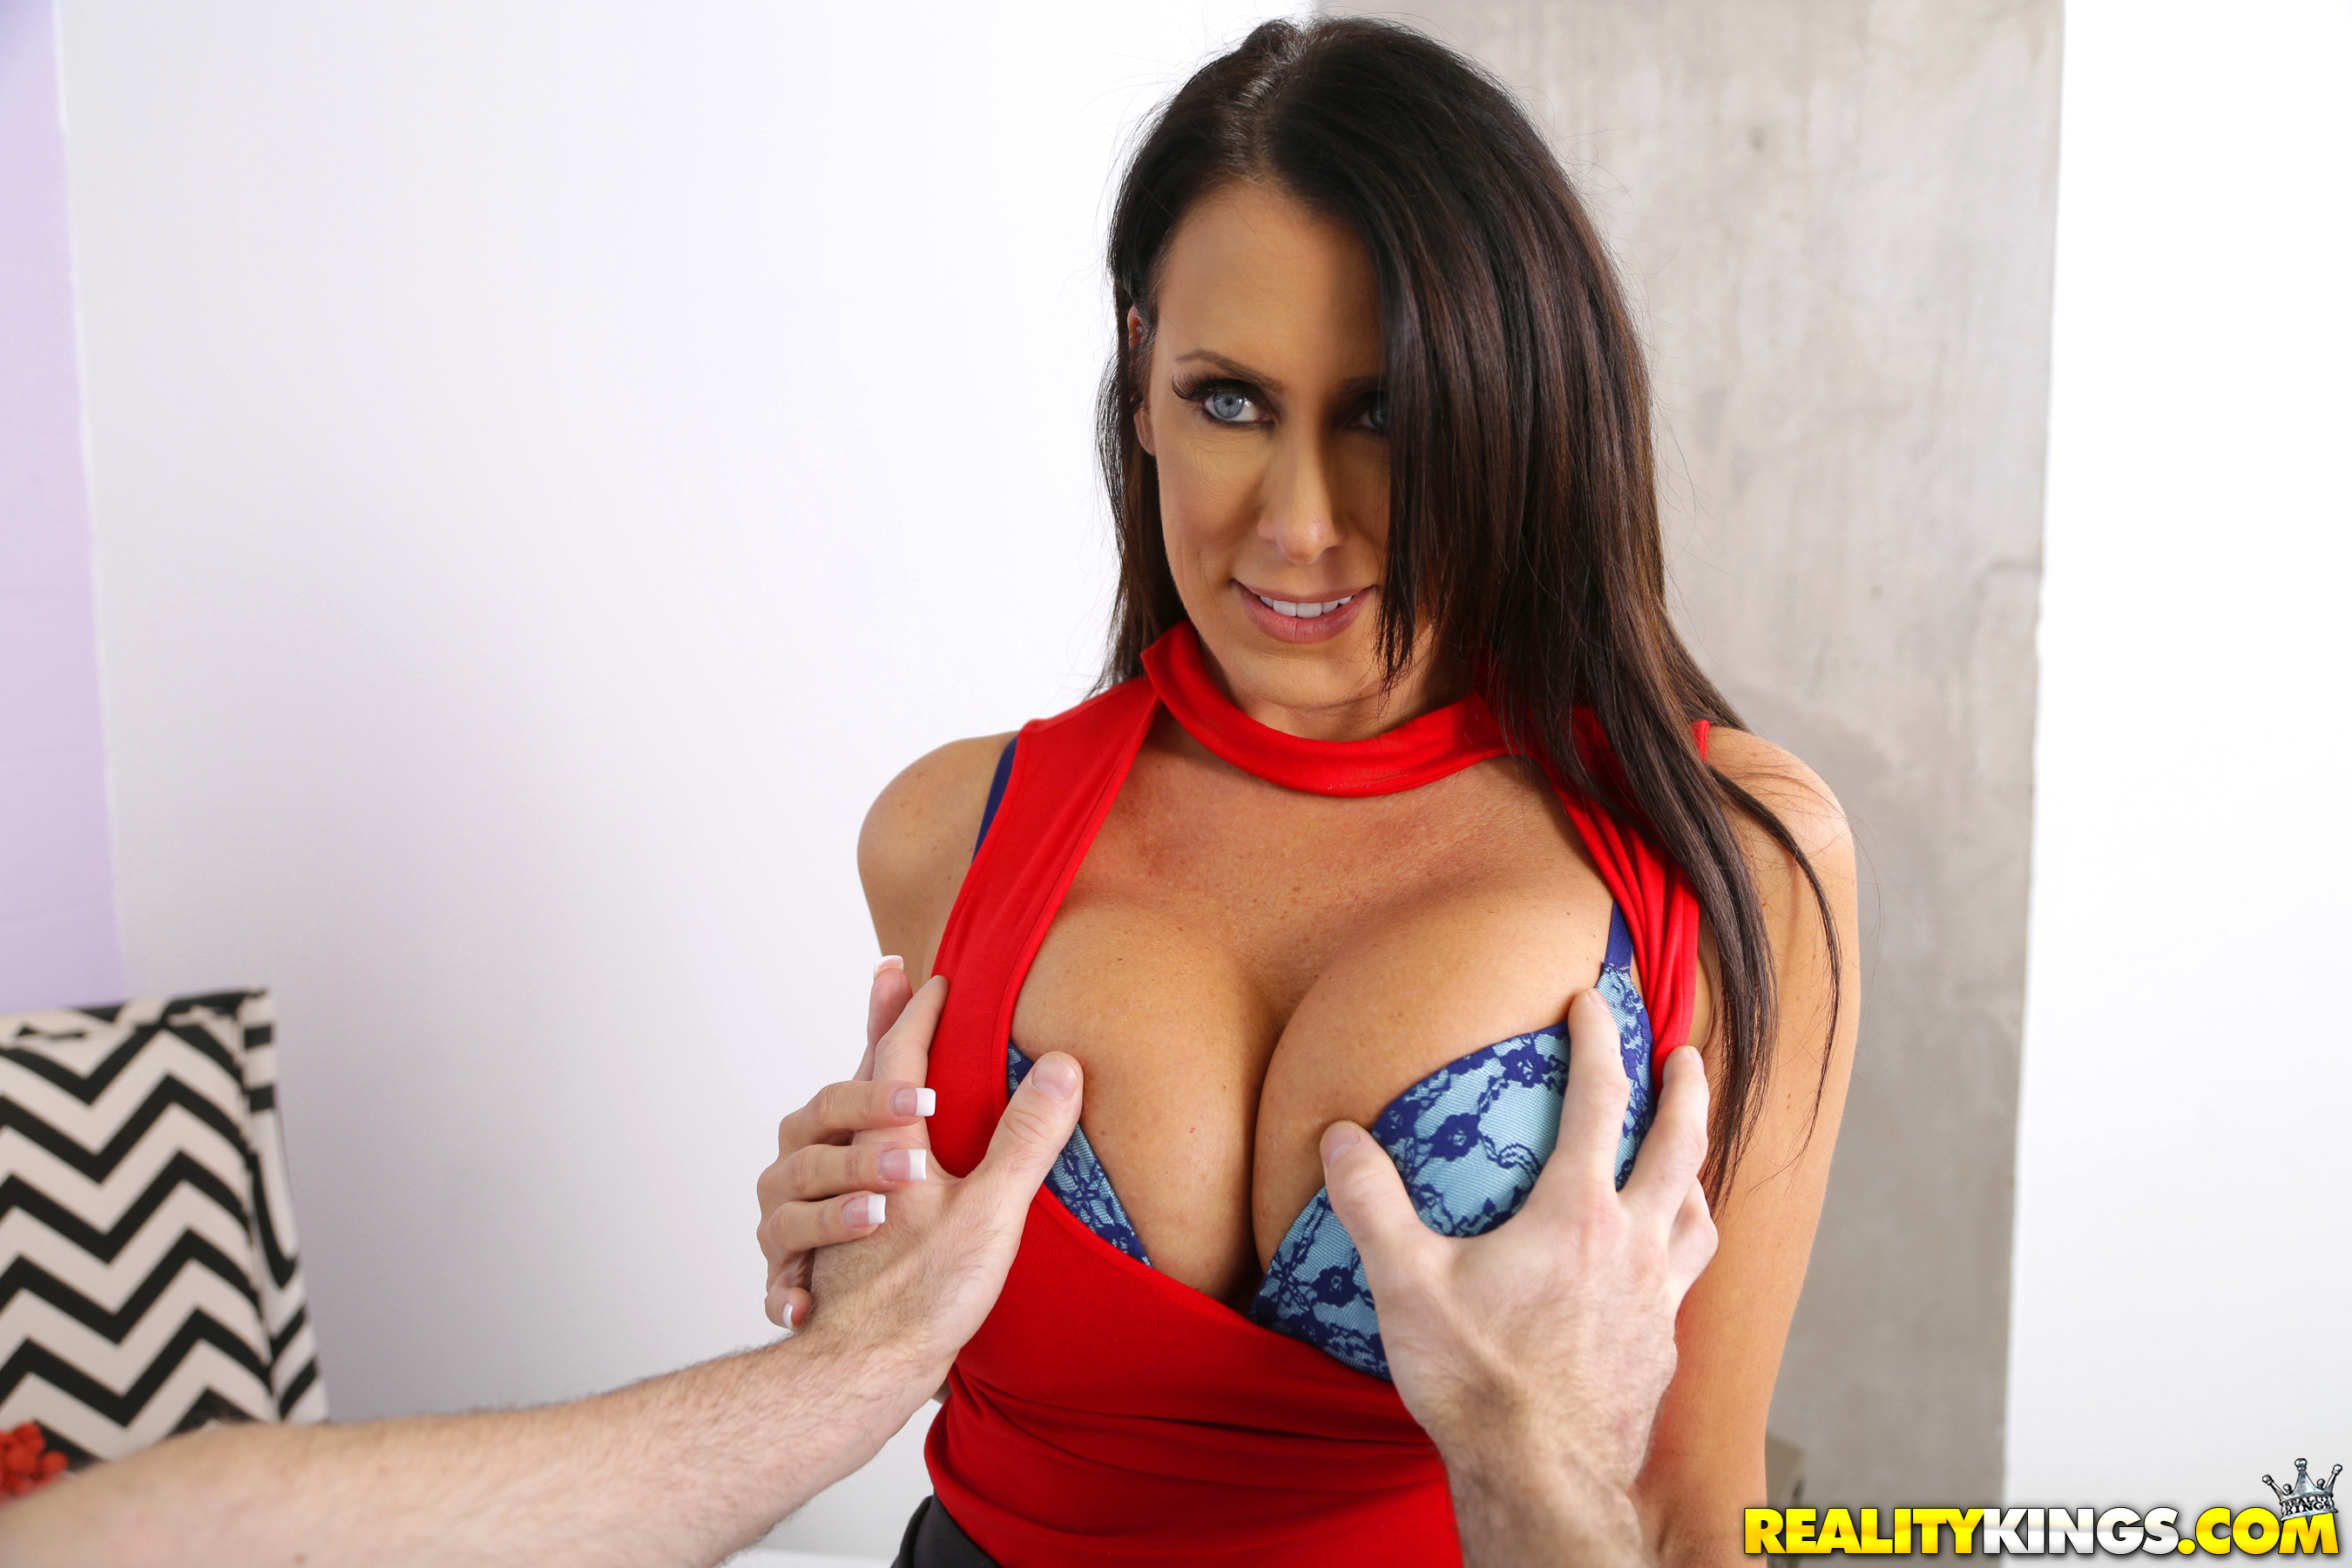 Big titty milf regan anthony takes it in the butt 6